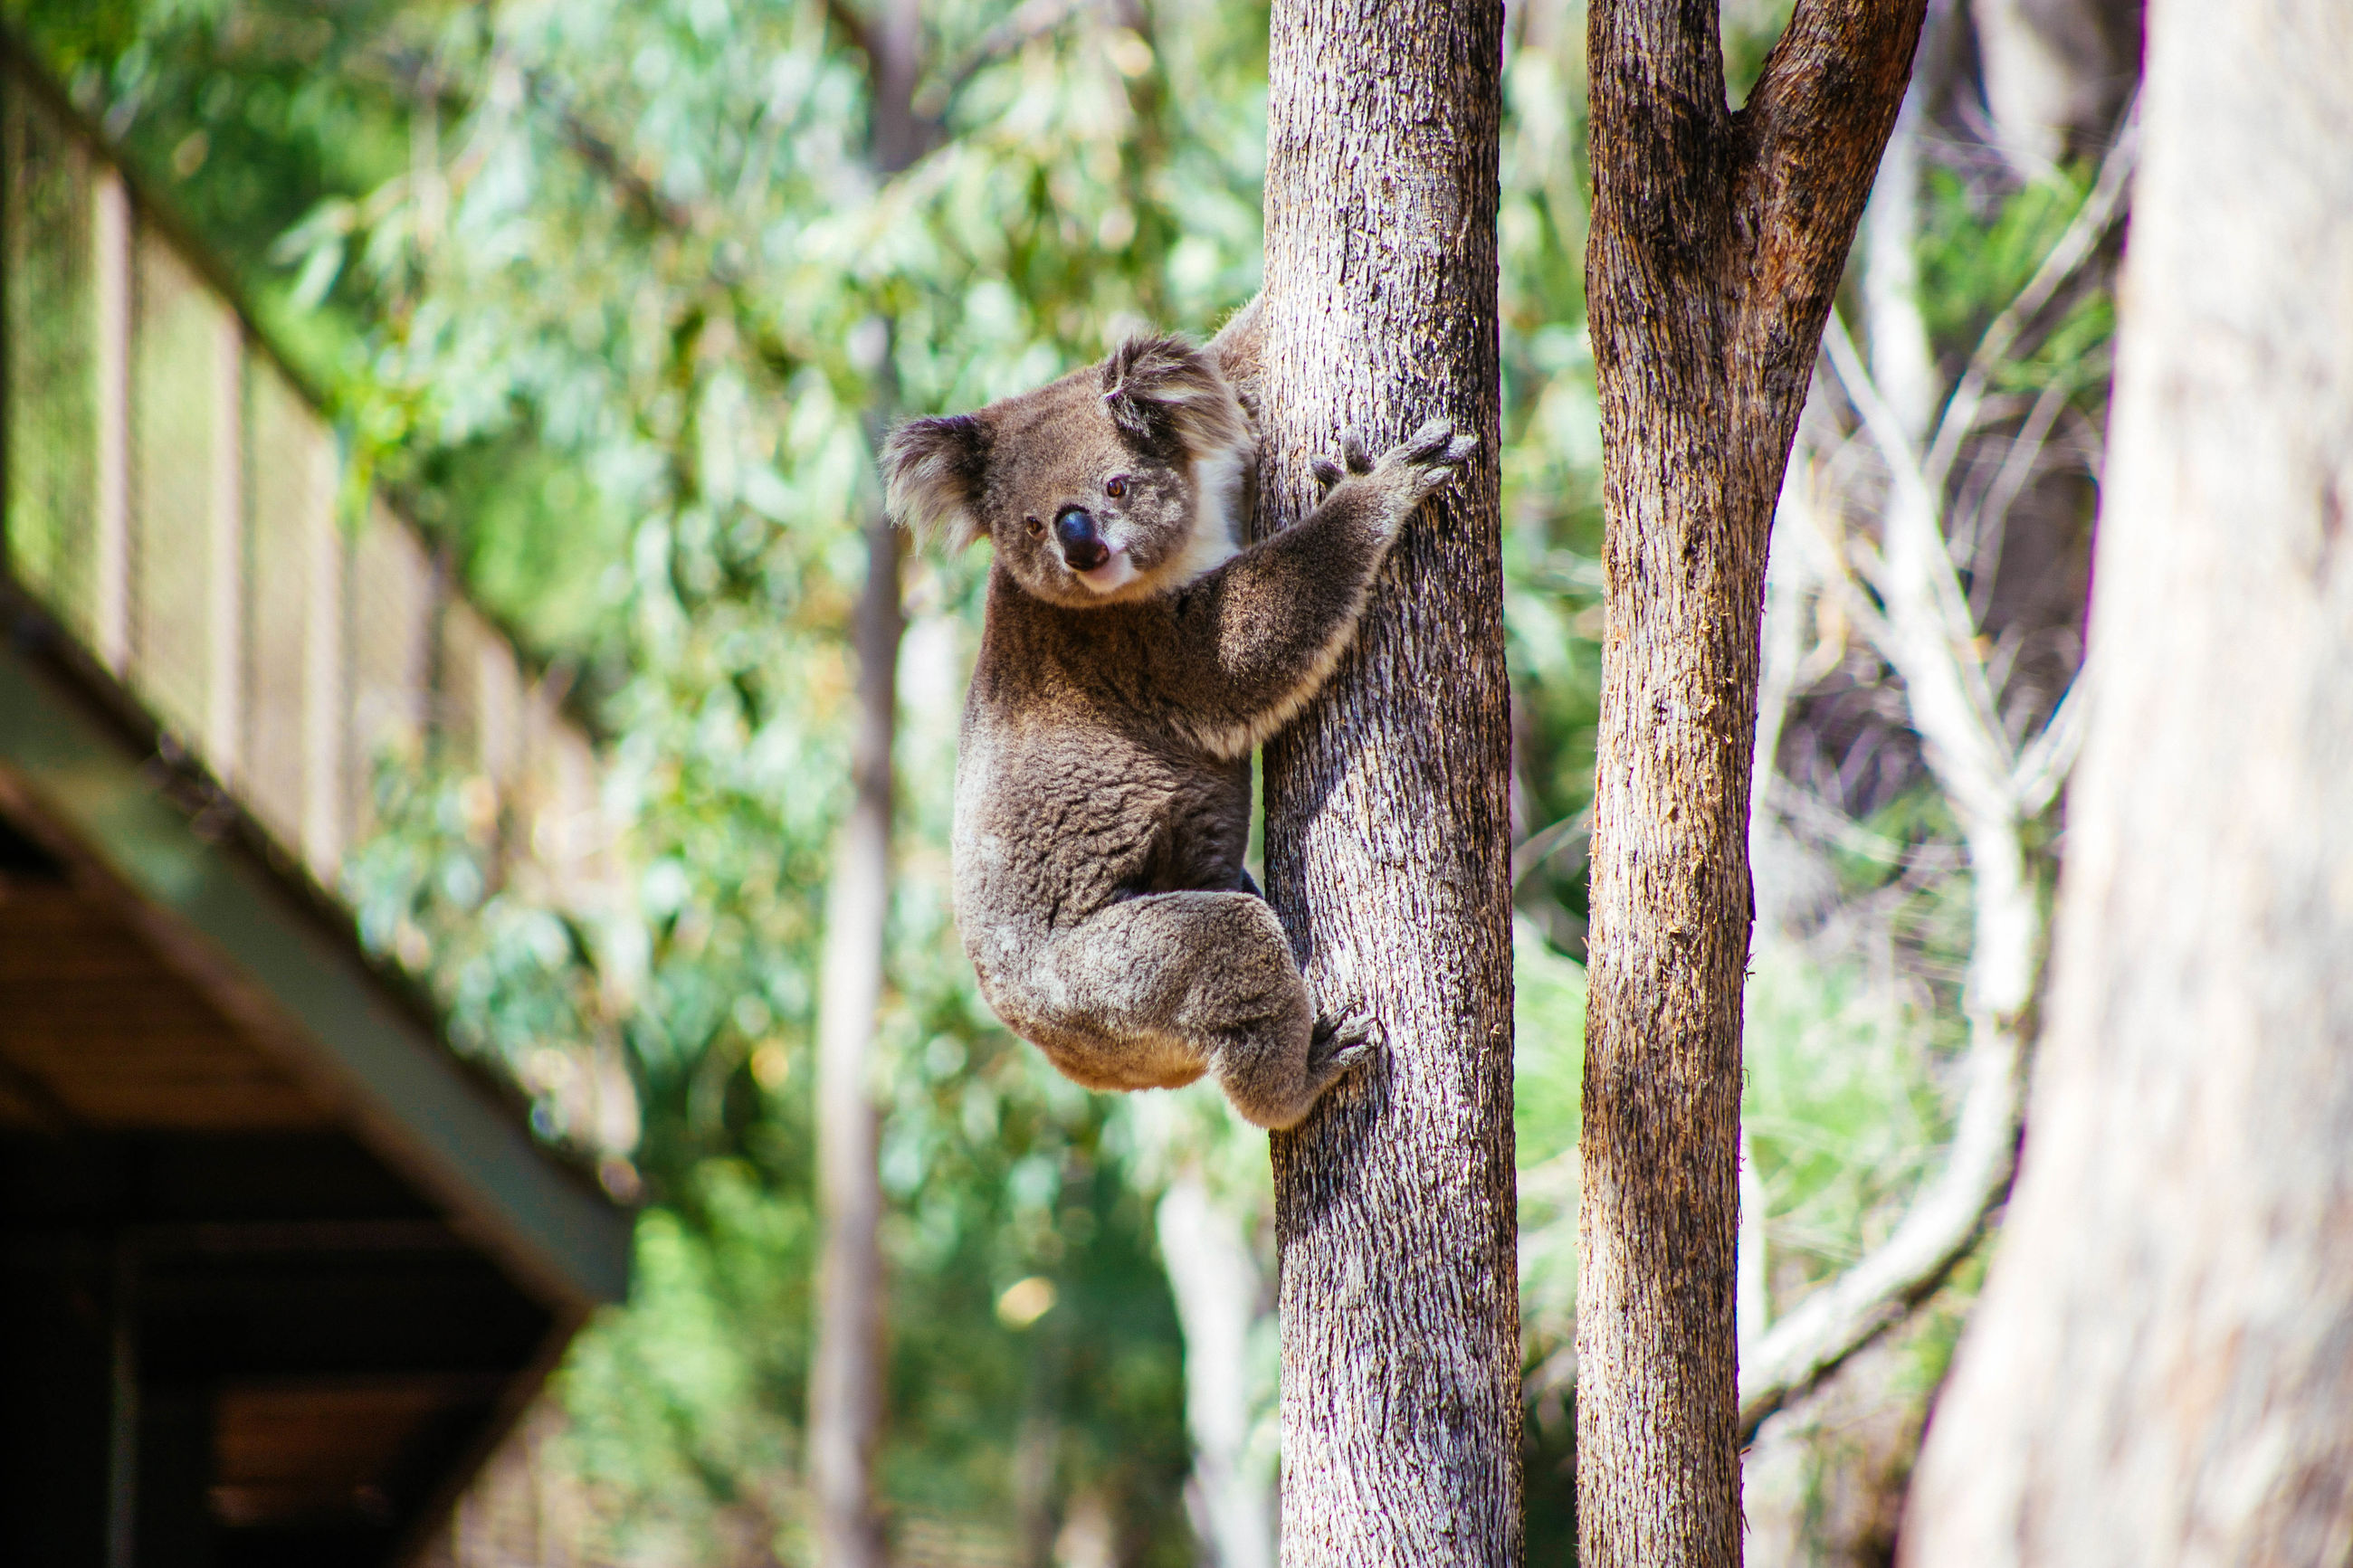 animal themes, one animal, animals in the wild, tree, wildlife, focus on foreground, mammal, tree trunk, nature, branch, close-up, day, outdoors, selective focus, looking at camera, squirrel, no people, growth, fence, portrait